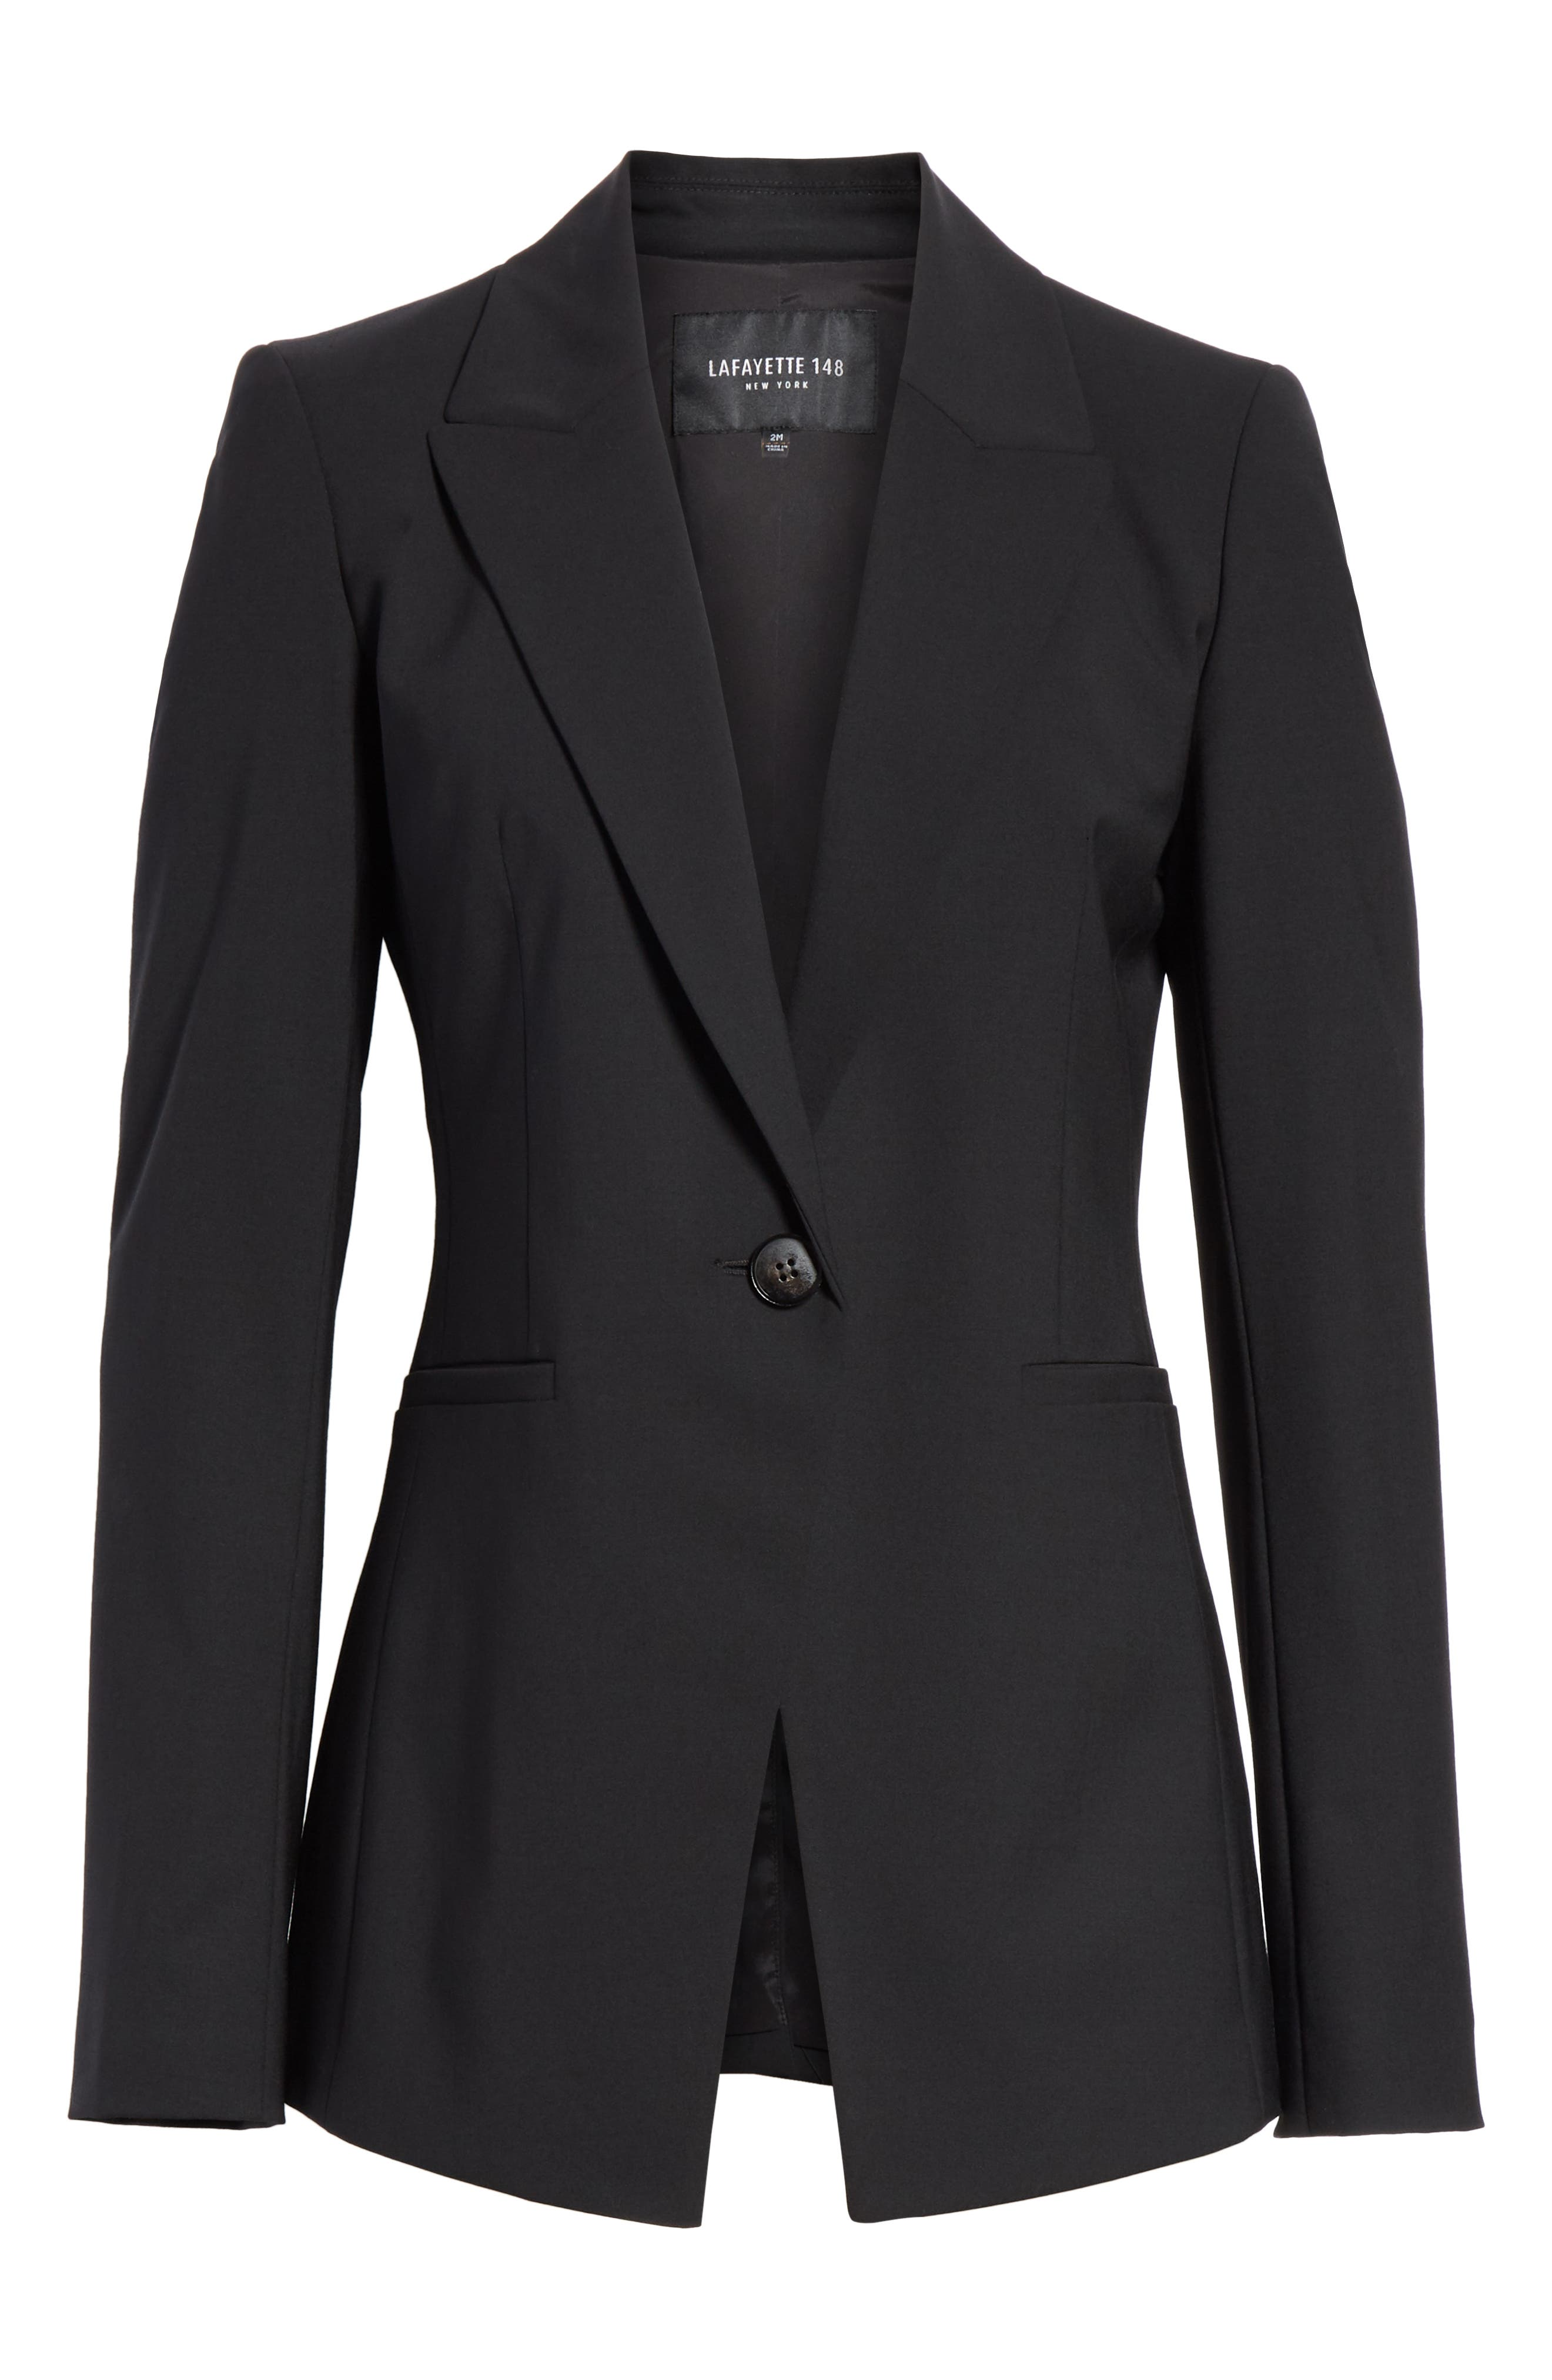 LAFAYETTE 148 NEW YORK, Charice Stretch Wool Jacket, Alternate thumbnail 7, color, BLACK